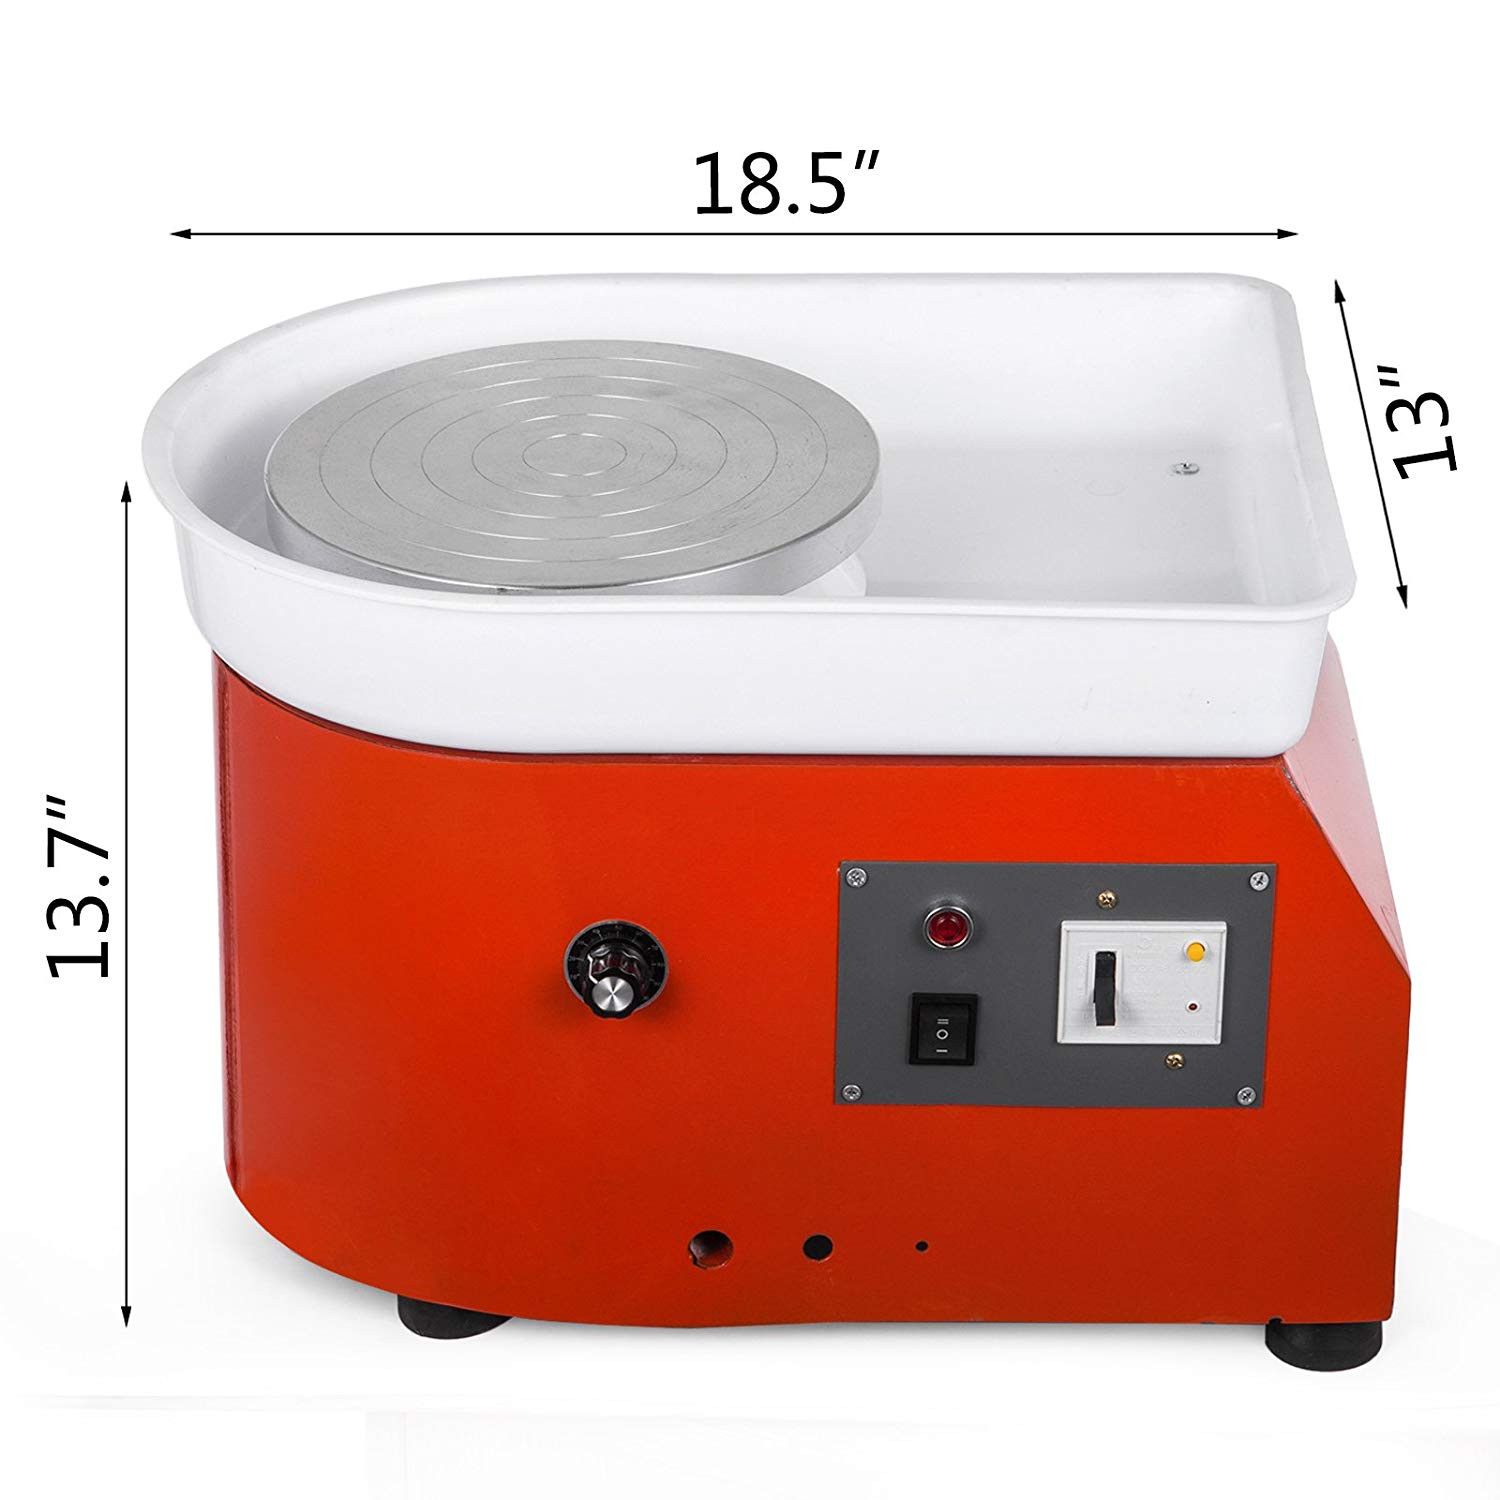 Pottery Forming Machine Red 9.8 Table Top Pottery Wheel Ceramics Clay Tool Molding Machine 25cm